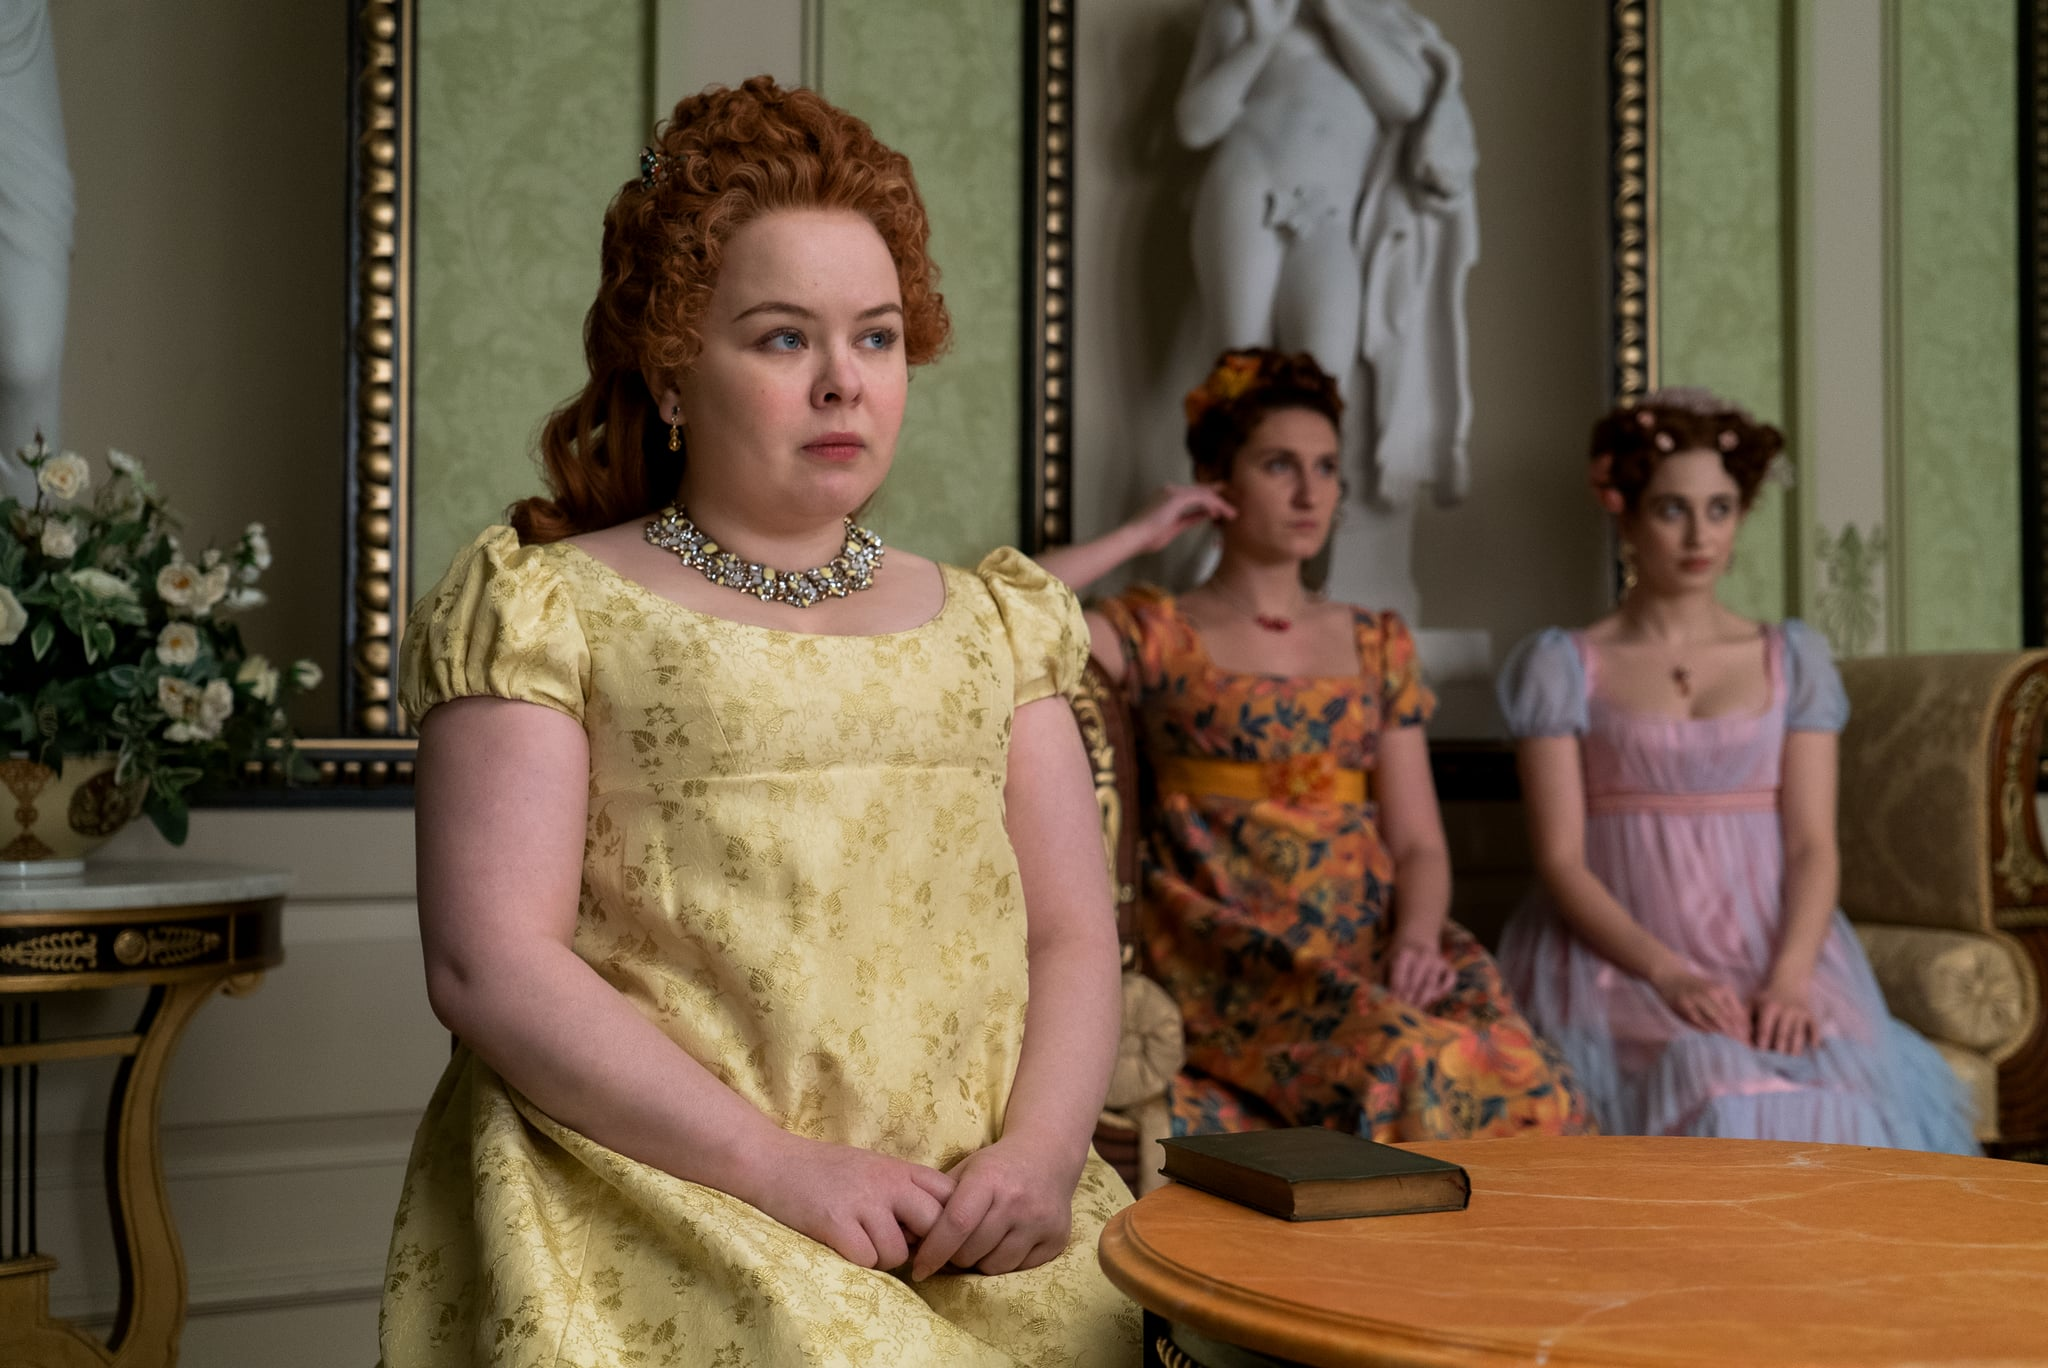 BRIDGERTON (L to R) NICOLA COUGHLAN as PENELOPE FEATHERINGTON, BESSIE CARTER as PRUDENCE FEATHERINGTON and HARRIET CAINS as PHILLIPA FEATHERINGTON in episode 10 of BRIDGERTON Cr. LIAM DANIEL/NETFLIX  2020